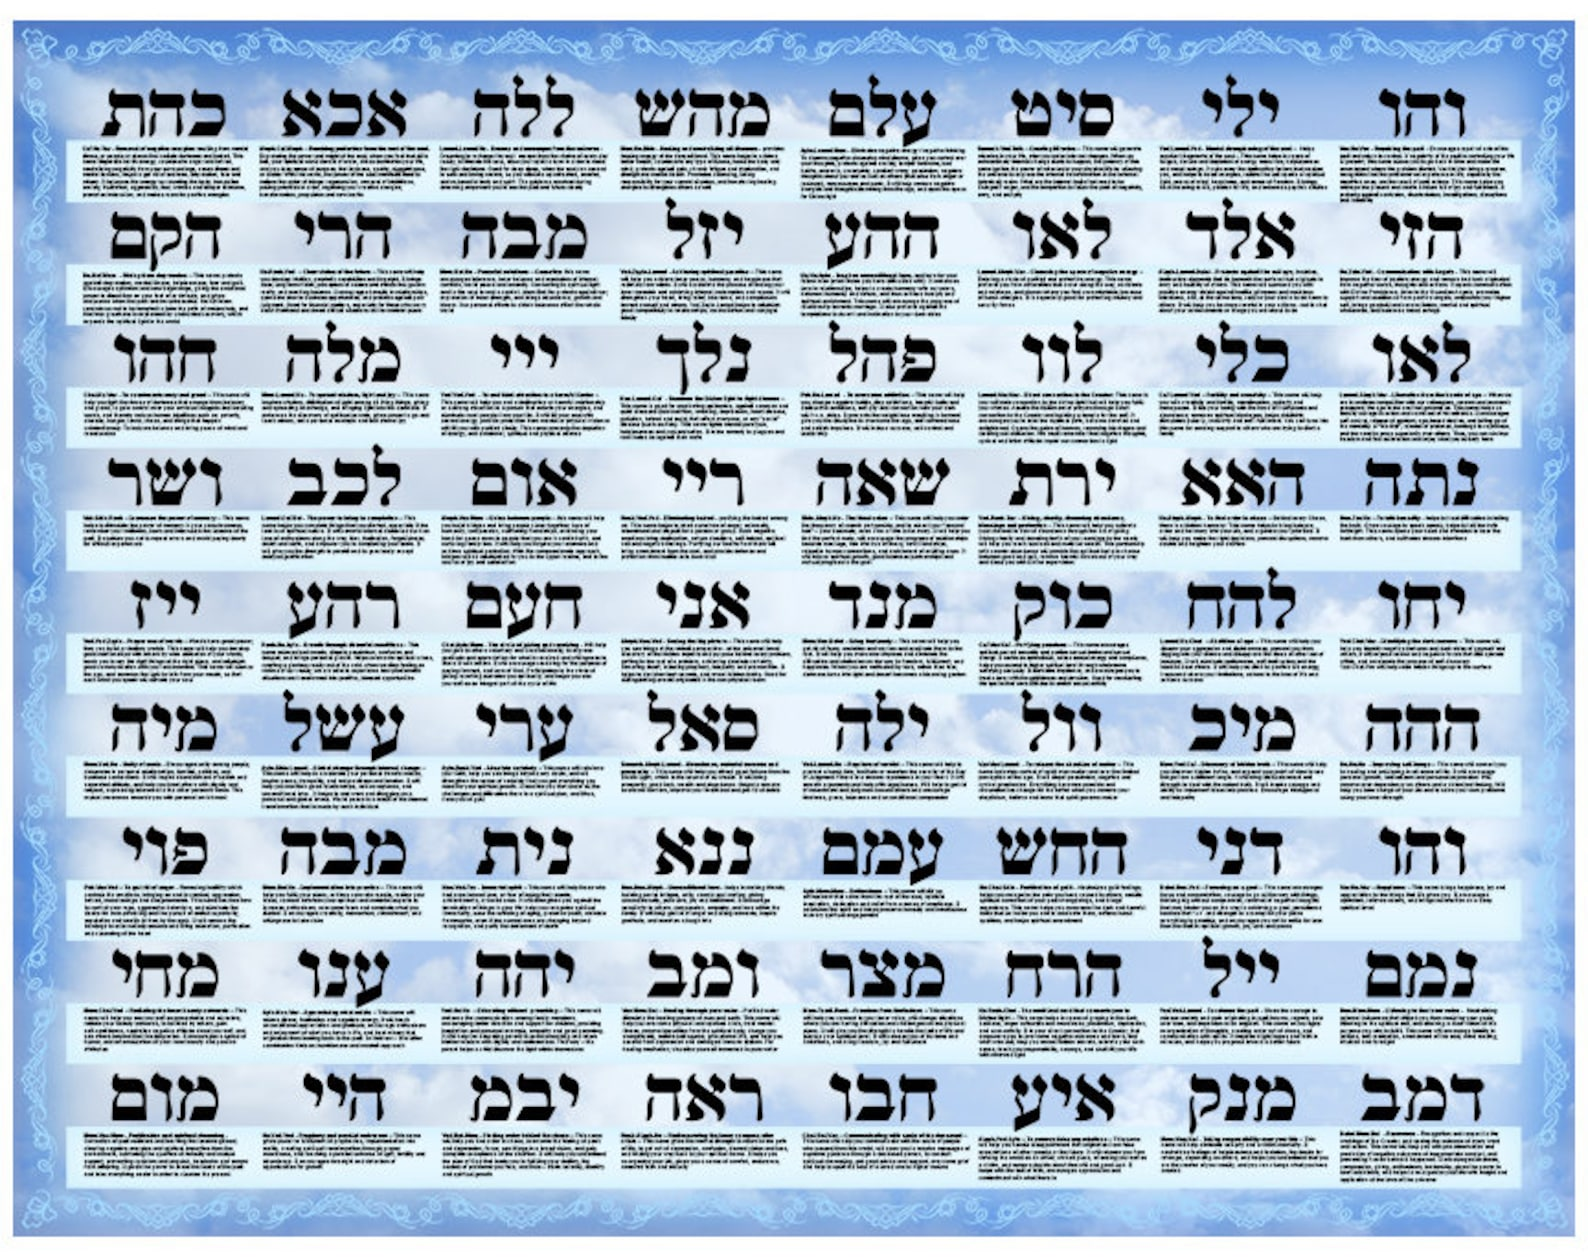 Reflections on the name of God, written as YHWH, but replaced by 'Adonai' in spoken version of the Jewish prayer called the Shema, and other names for the Divine.